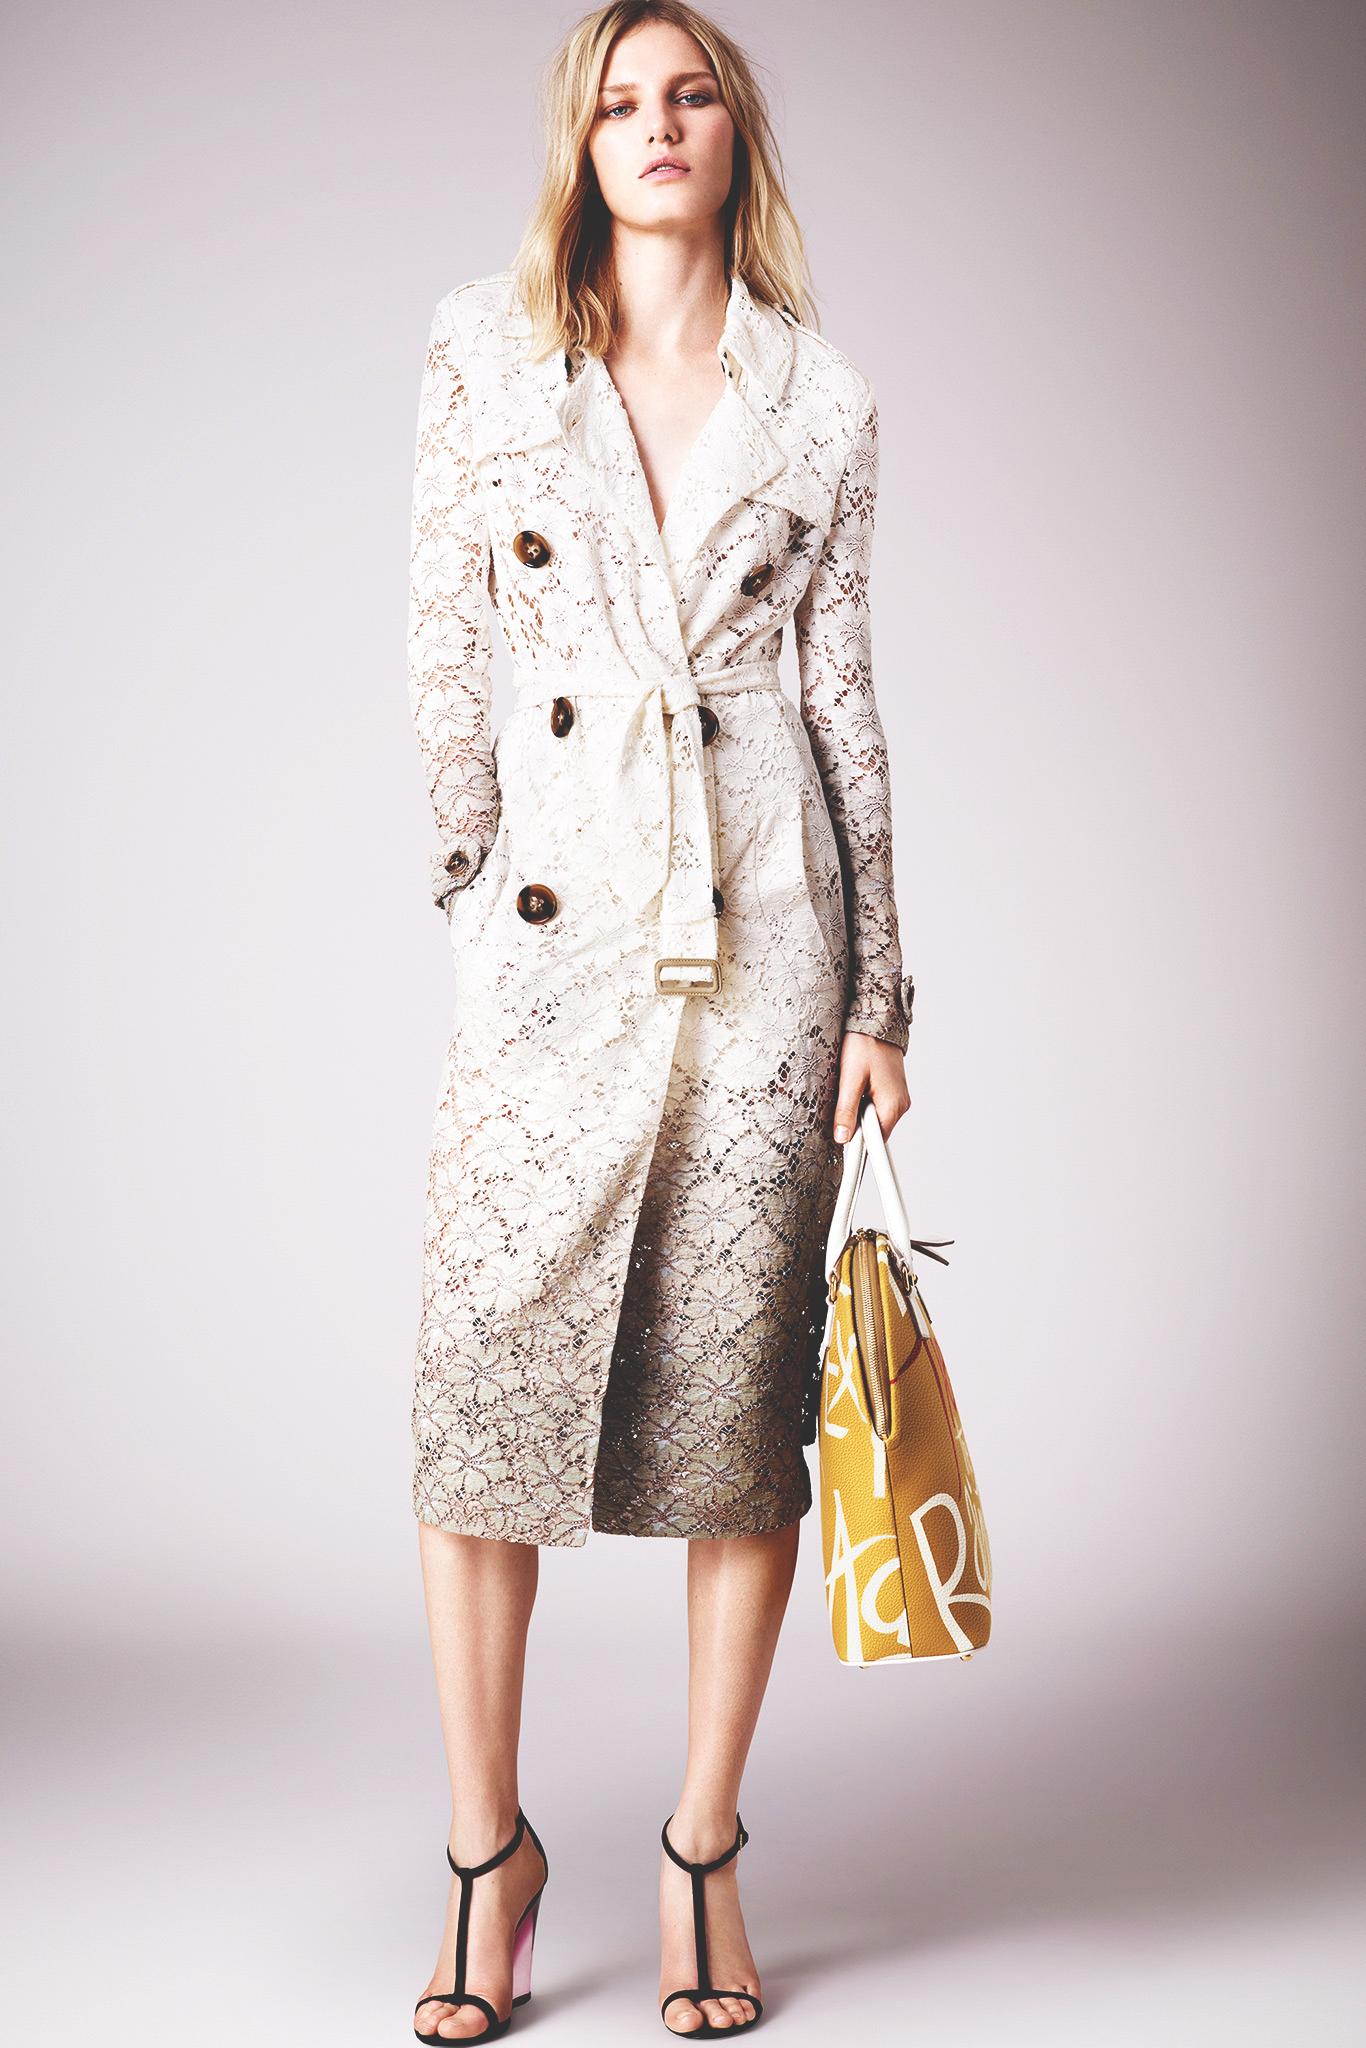 Burberry Prorsum Resort 2015 via Style.com